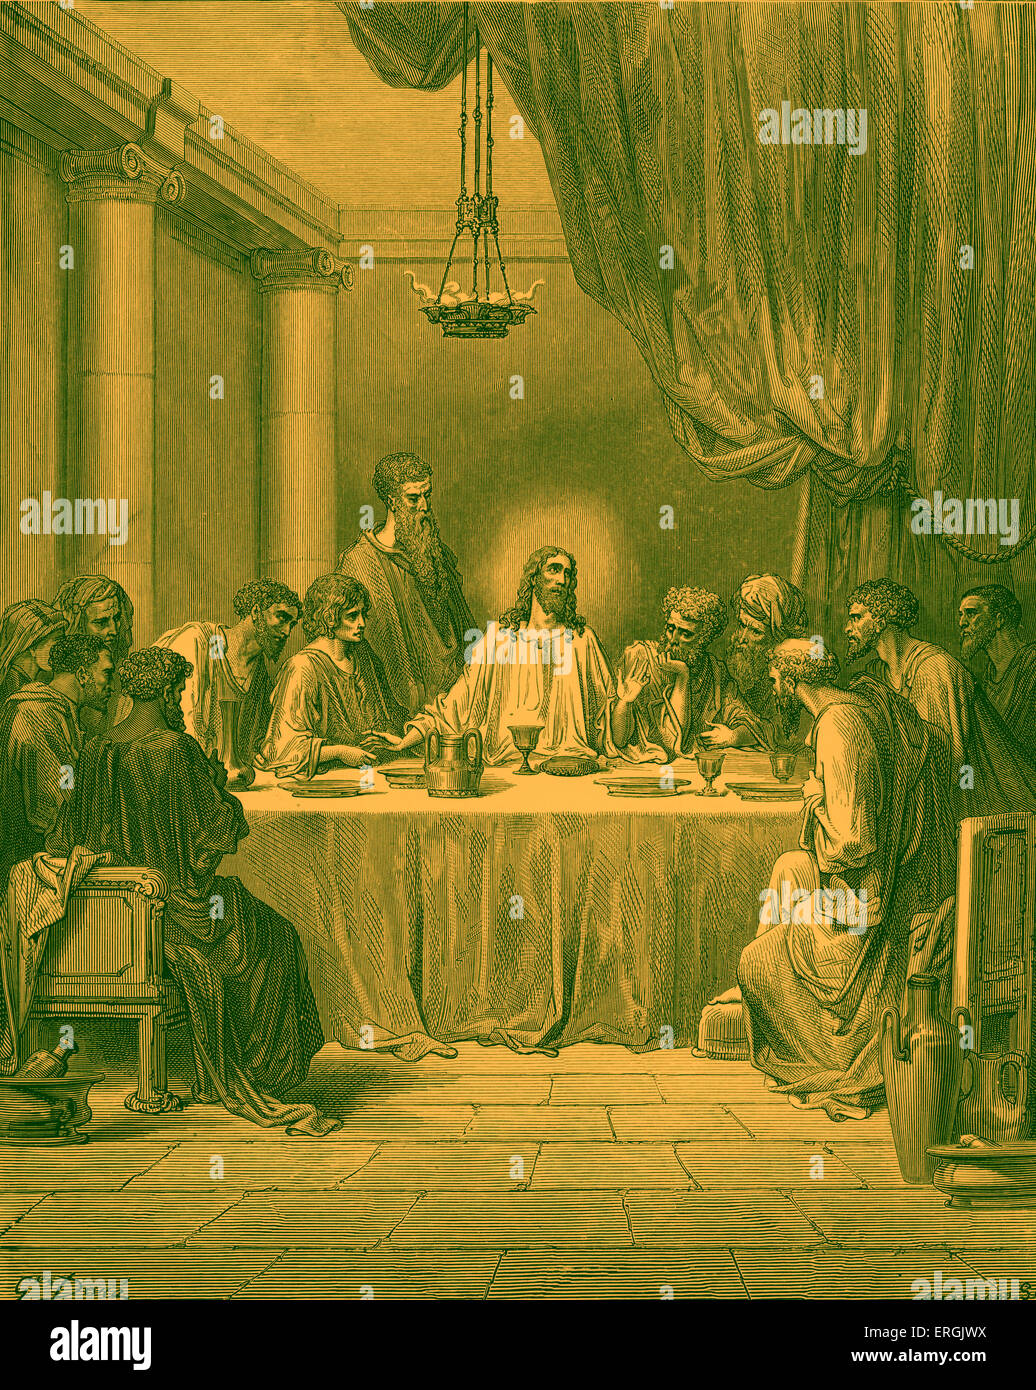 illustration last supper jesus christ stockfotos illustration last supper jesus christ bilder. Black Bedroom Furniture Sets. Home Design Ideas